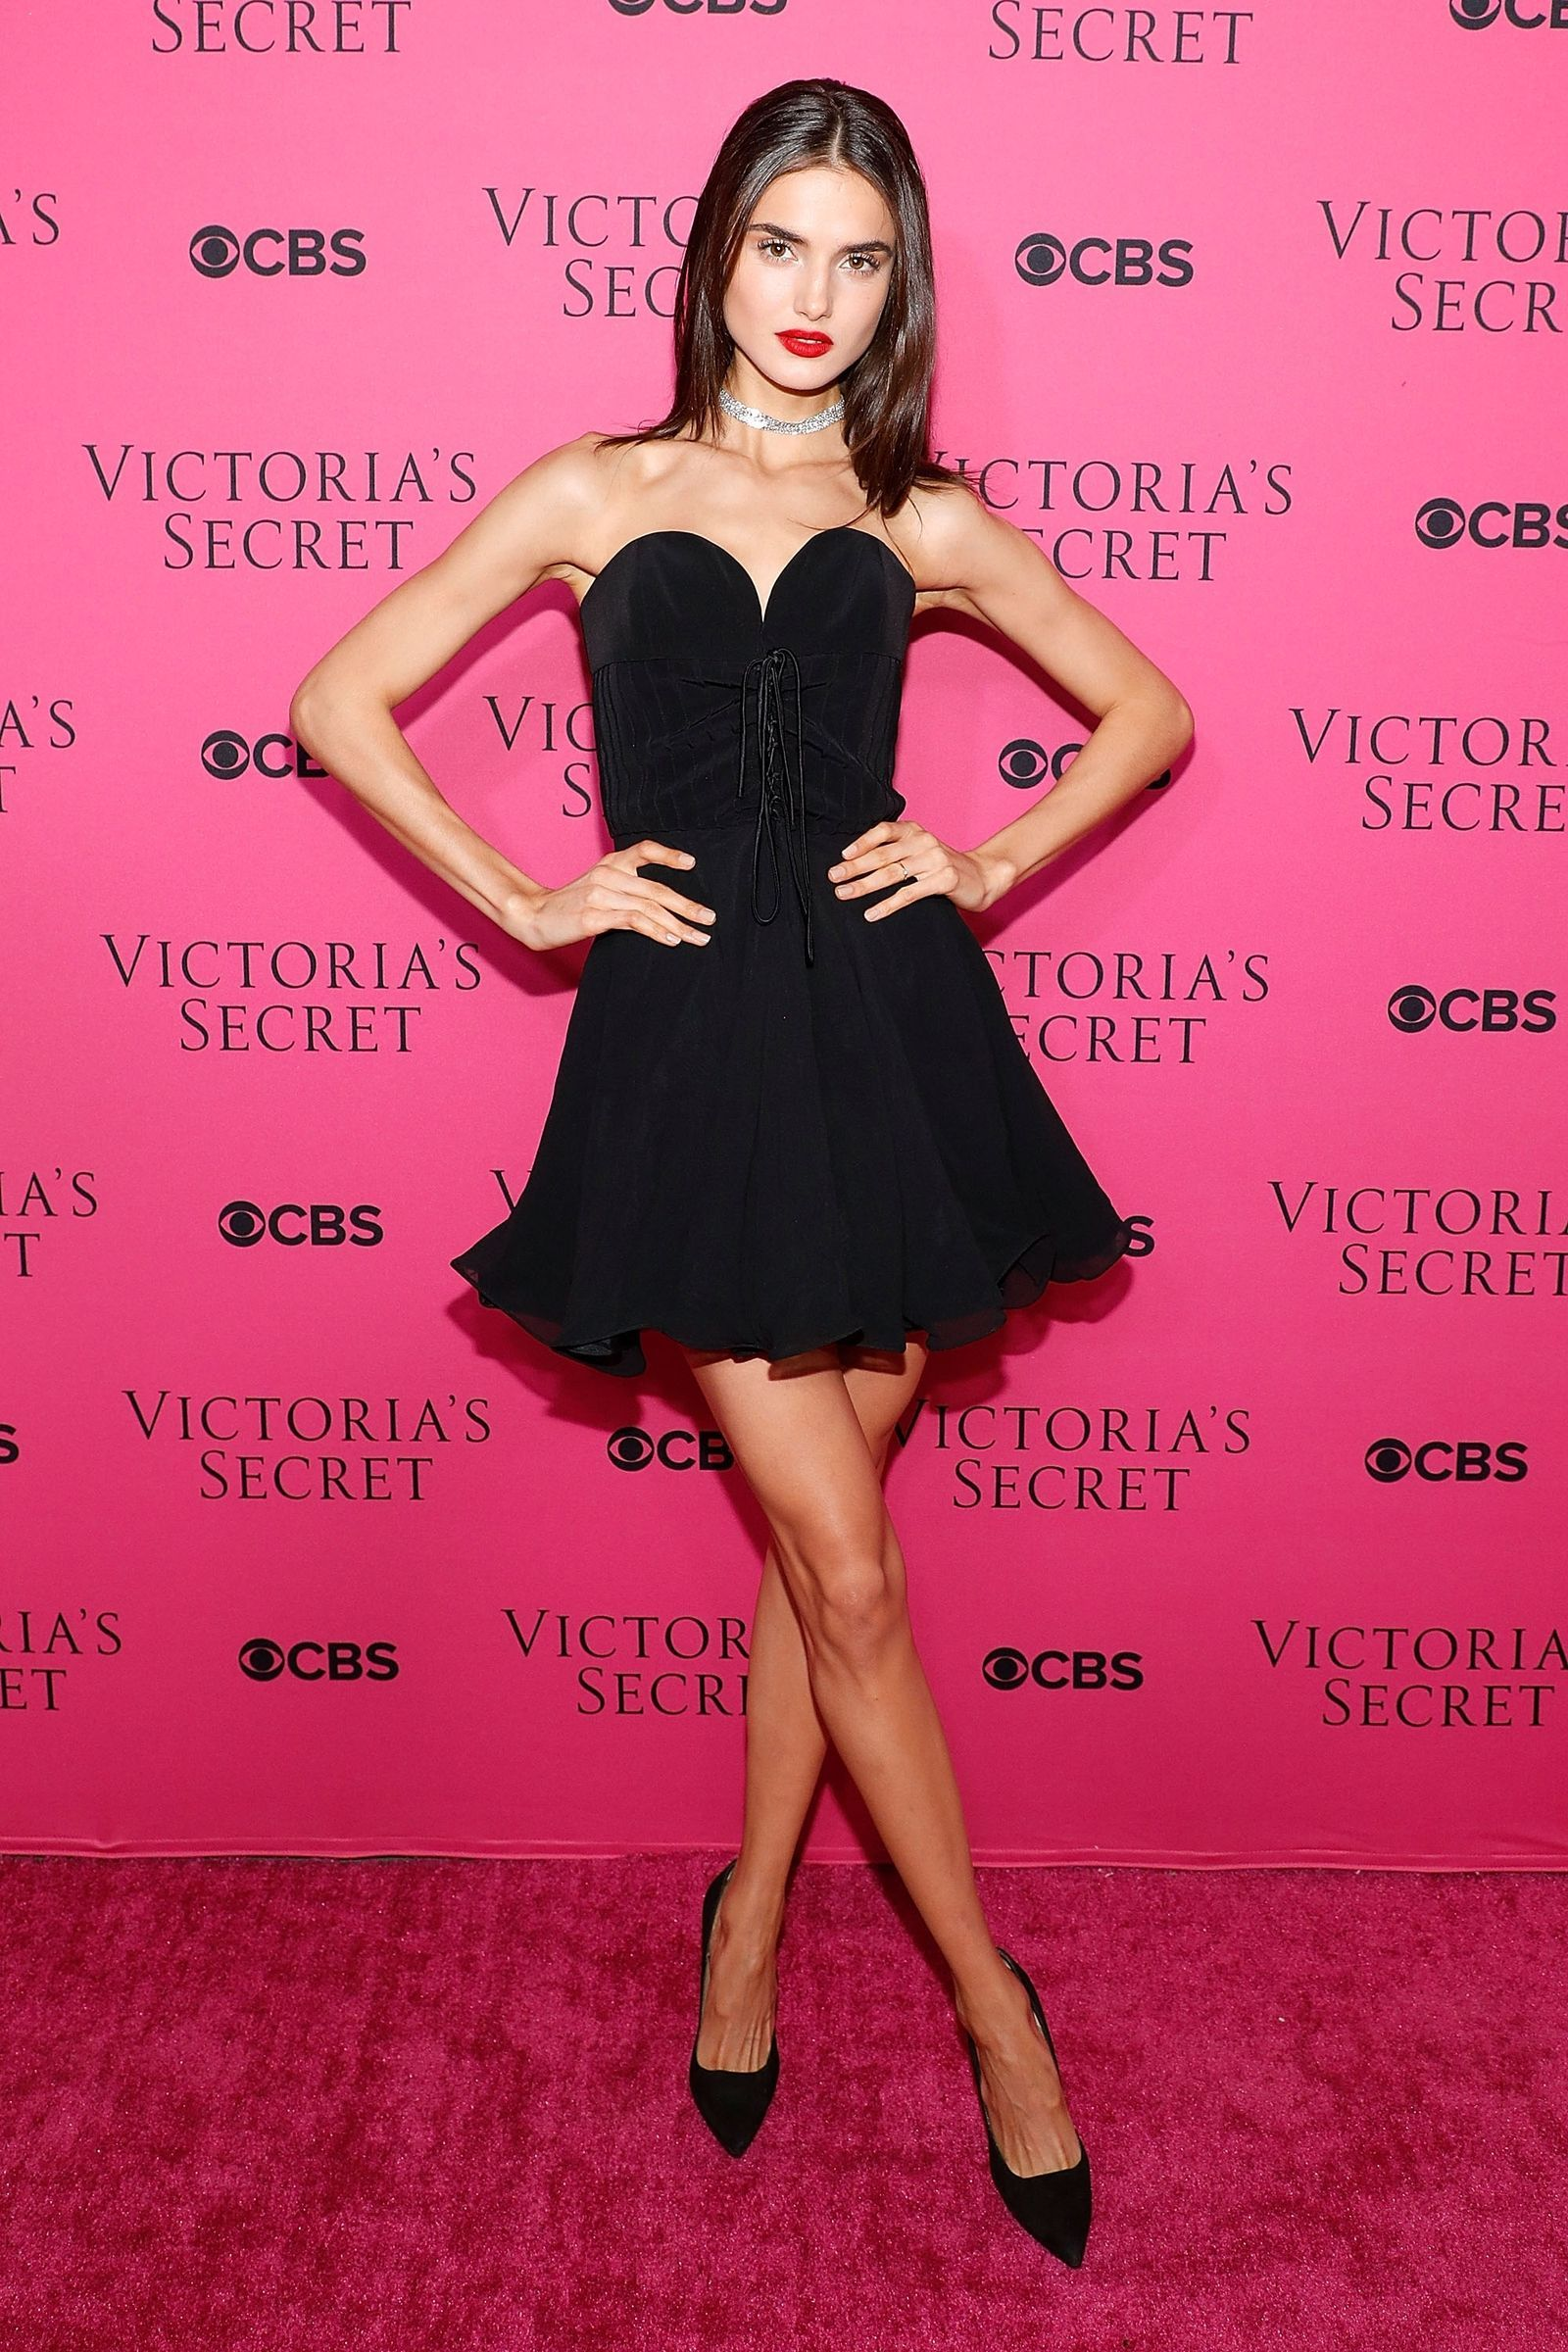 What The Victoria Secret Angels Wore To The Fashion Show Viewing Party Pretty Dresses Fashion Celebrity Outfits [ 2400 x 1600 Pixel ]